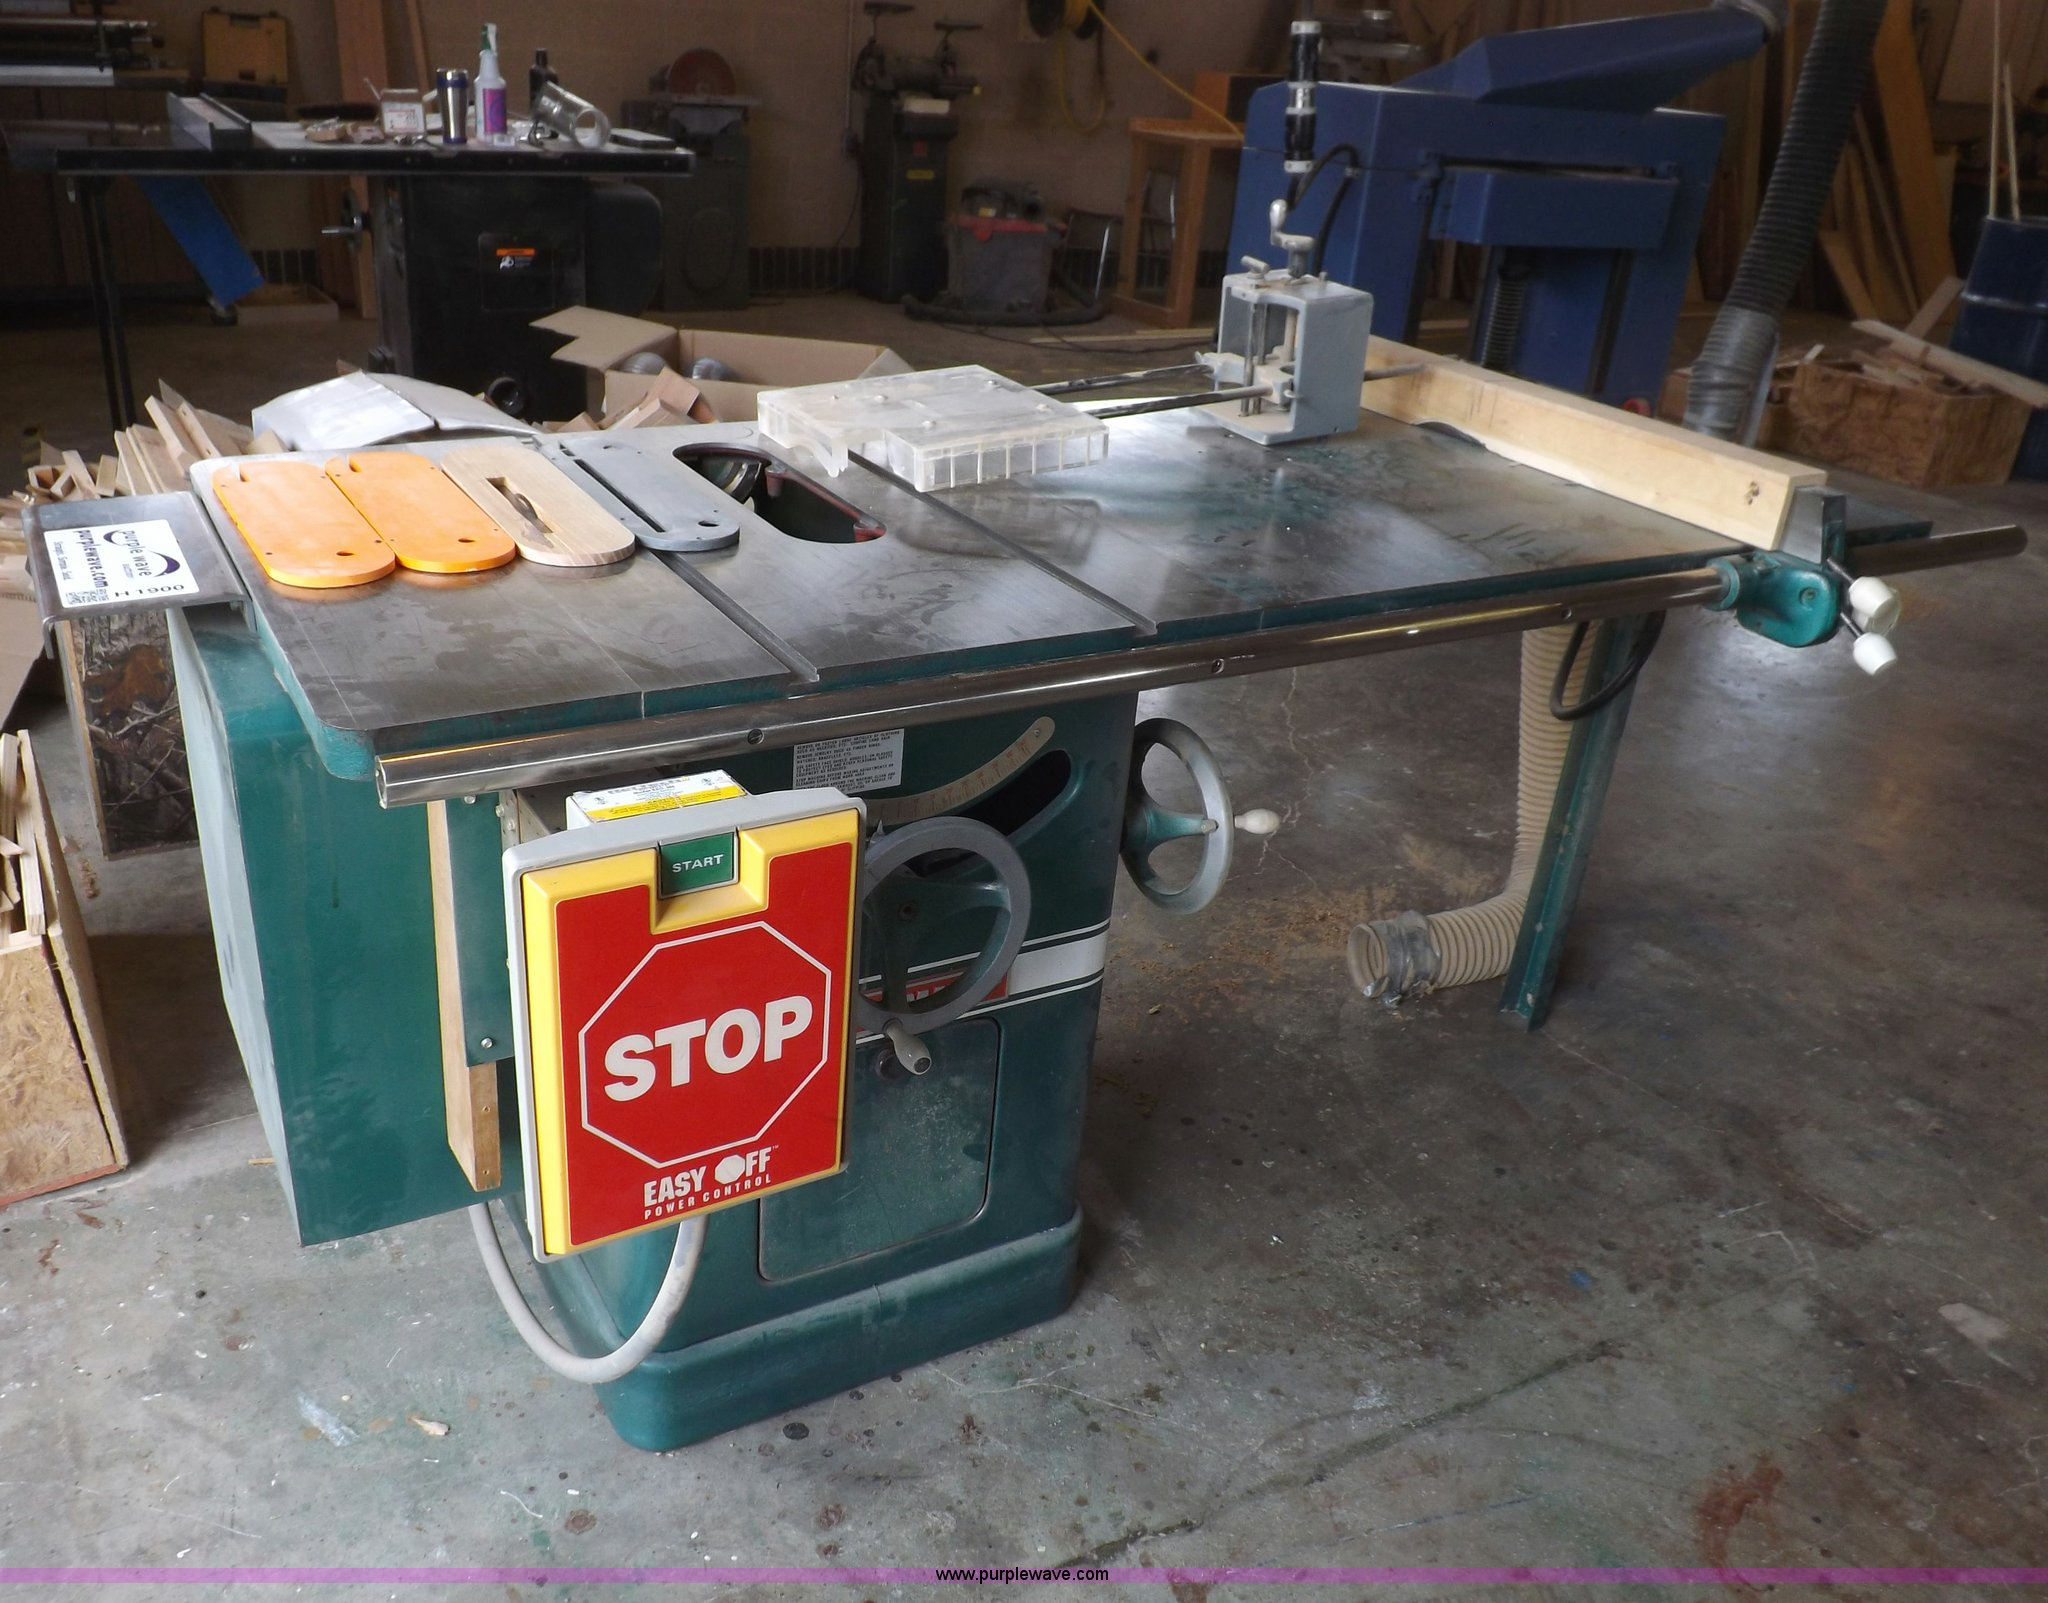 powermatic 66 table saw item h1900 sold june 3 governme rh purplewave com powermatic 66 table saw weight powermatic 66 table saw parts